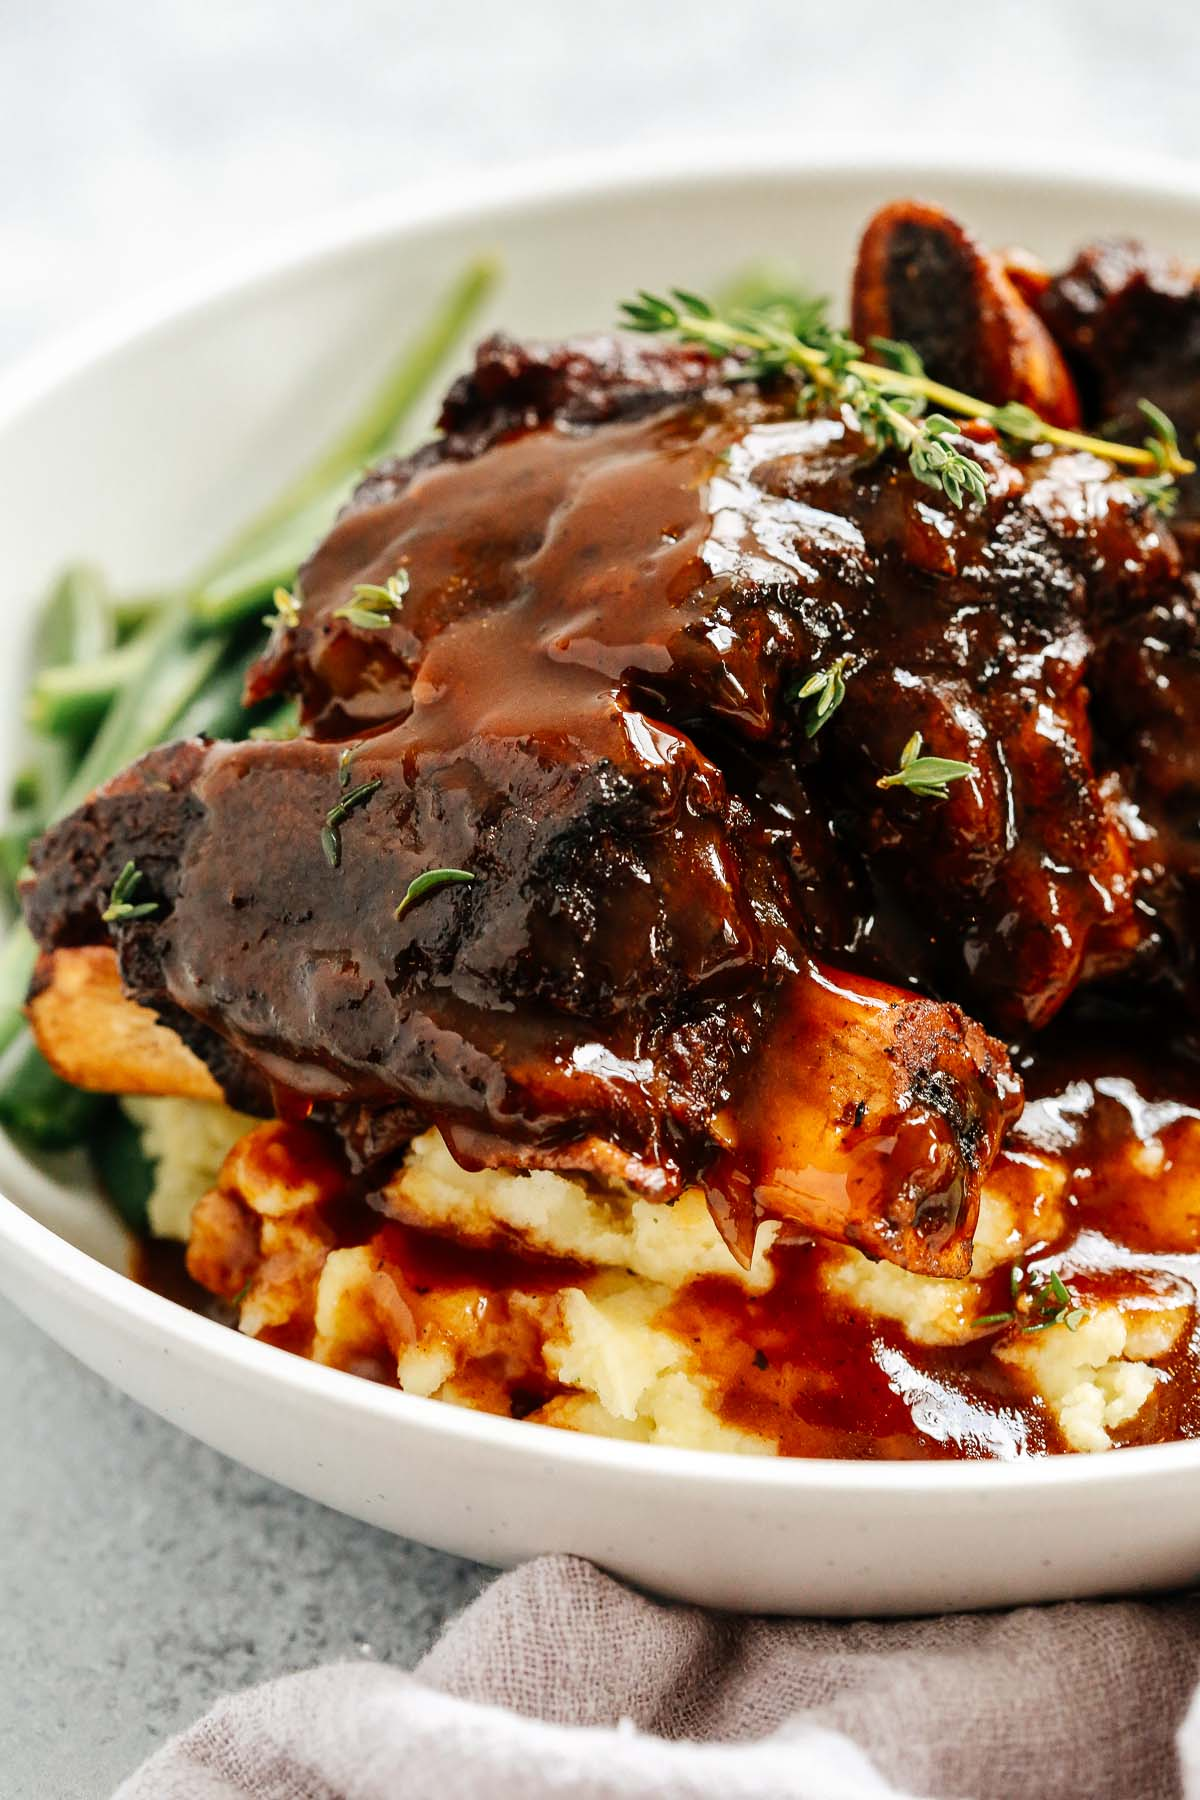 Short ribs with delicious sauce on top